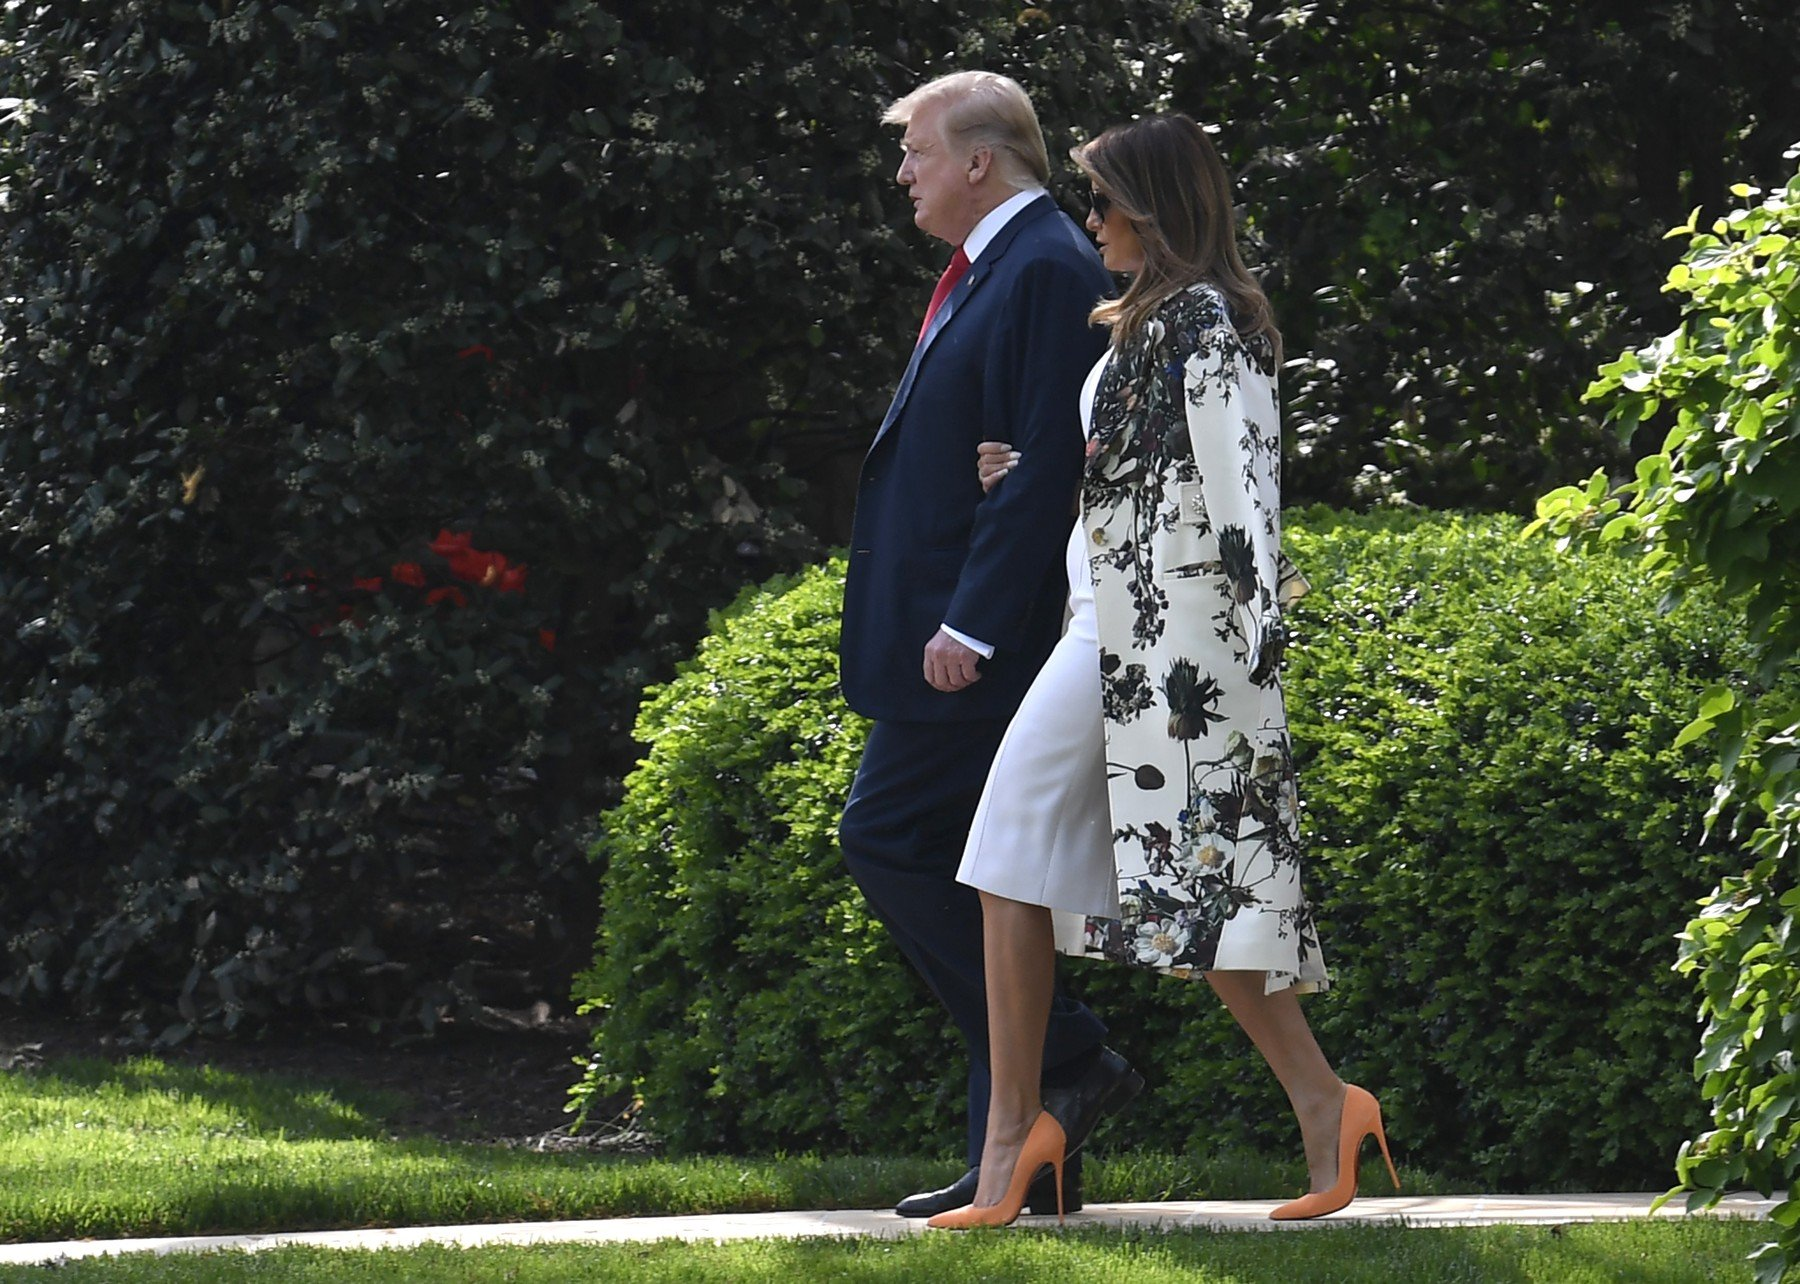 President Donald Trump and First Lady Melania Trump walk from the Oval Office to Marine One for departure from the White House, April 18, 2019, Washington, DC. The Trumps will spend Easter weekend at the Mar-a-Lago estate in Florida.          Photo by /UPI, Image: 426828247, License: Rights-managed, Restrictions: , Model Release: no, Credit line: Profimedia, UPI